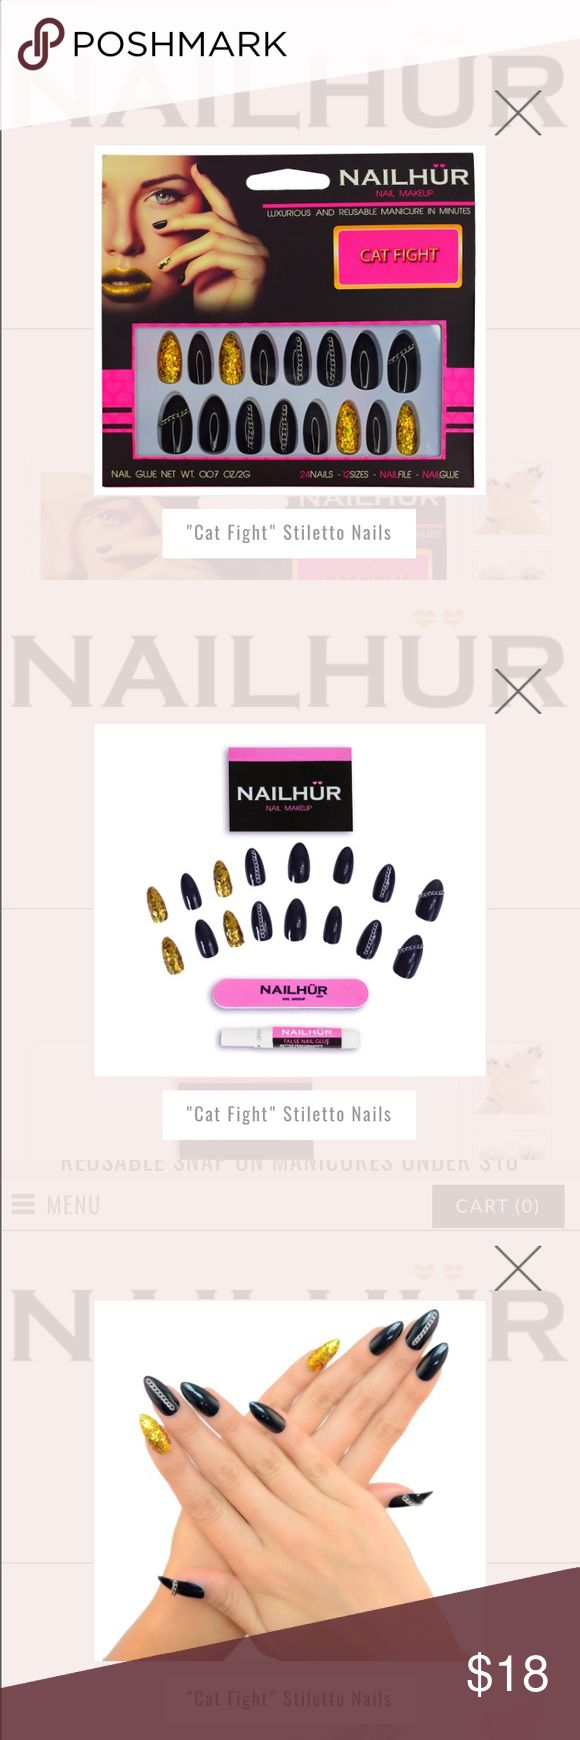 NAILHUR cat fight fight stiletto nails The Claws are out, don't mess with a woman and her stiletto manicure. Black, Gold sequins and Chains for girls who aren't afraid to get rough.  Includes 24 nails, 12 sizes, nail file, nail glue. nailhur Makeup